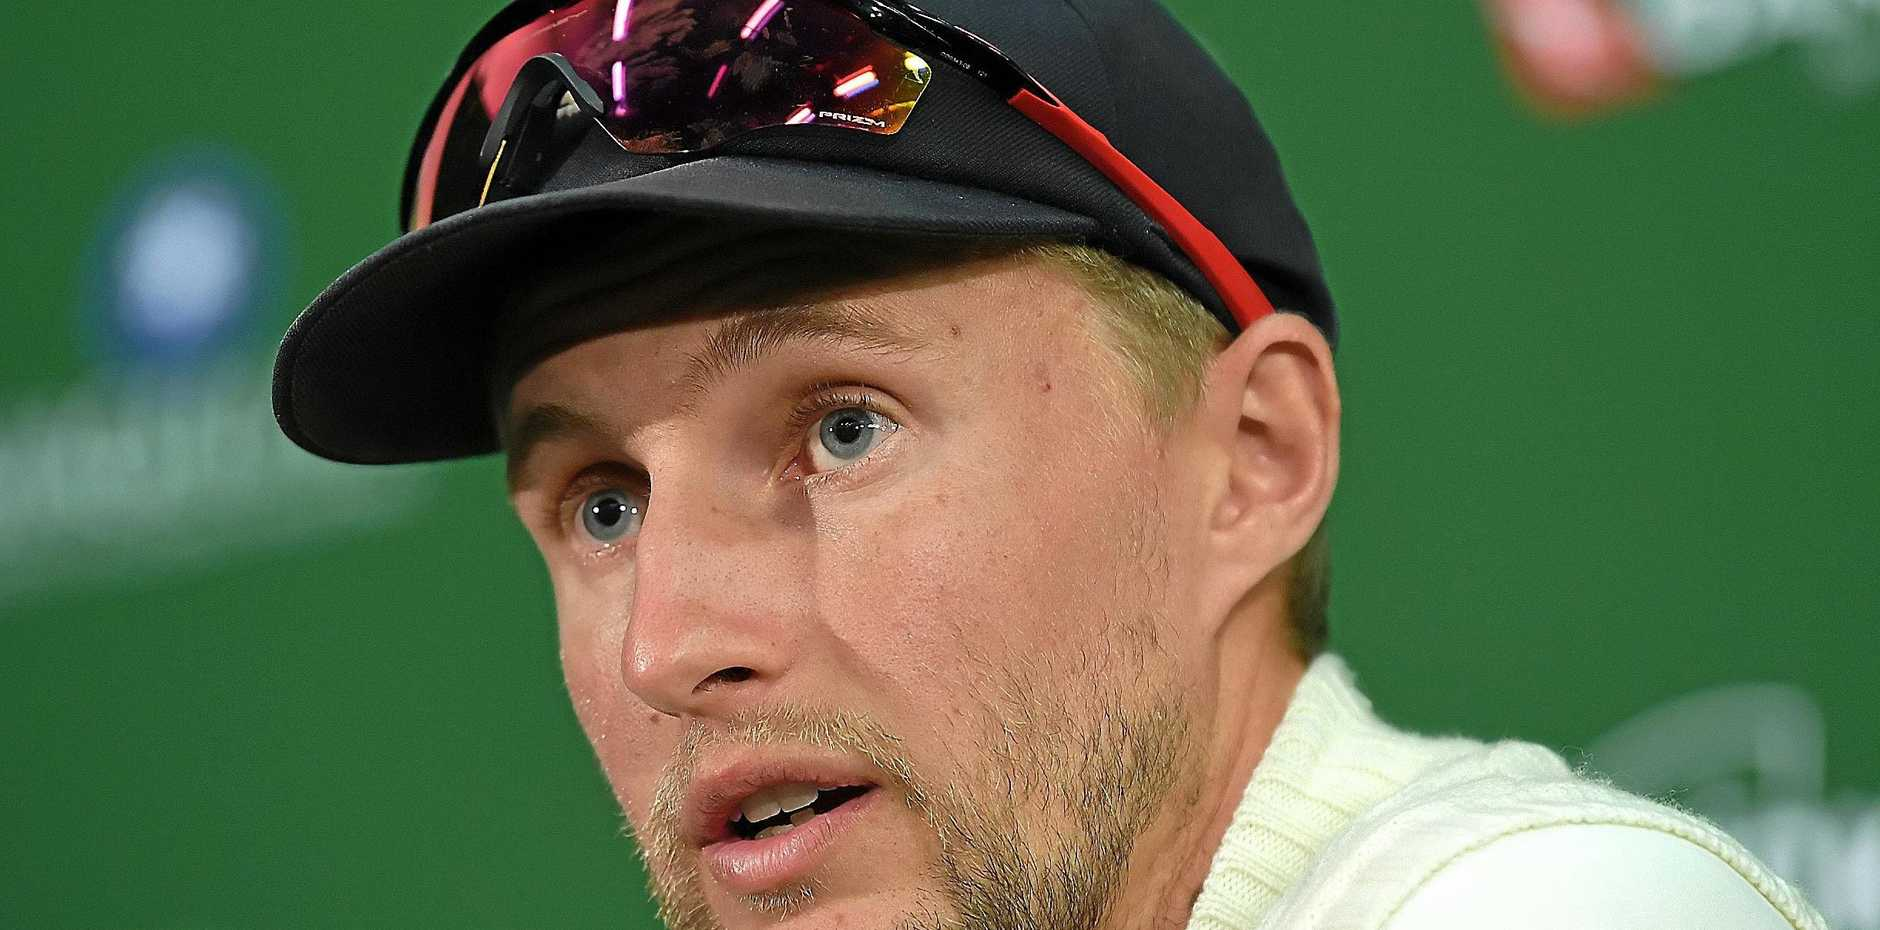 Joe Root speaks after England's loss to Australia in the second Ashes Test at the Adelaide Oval.